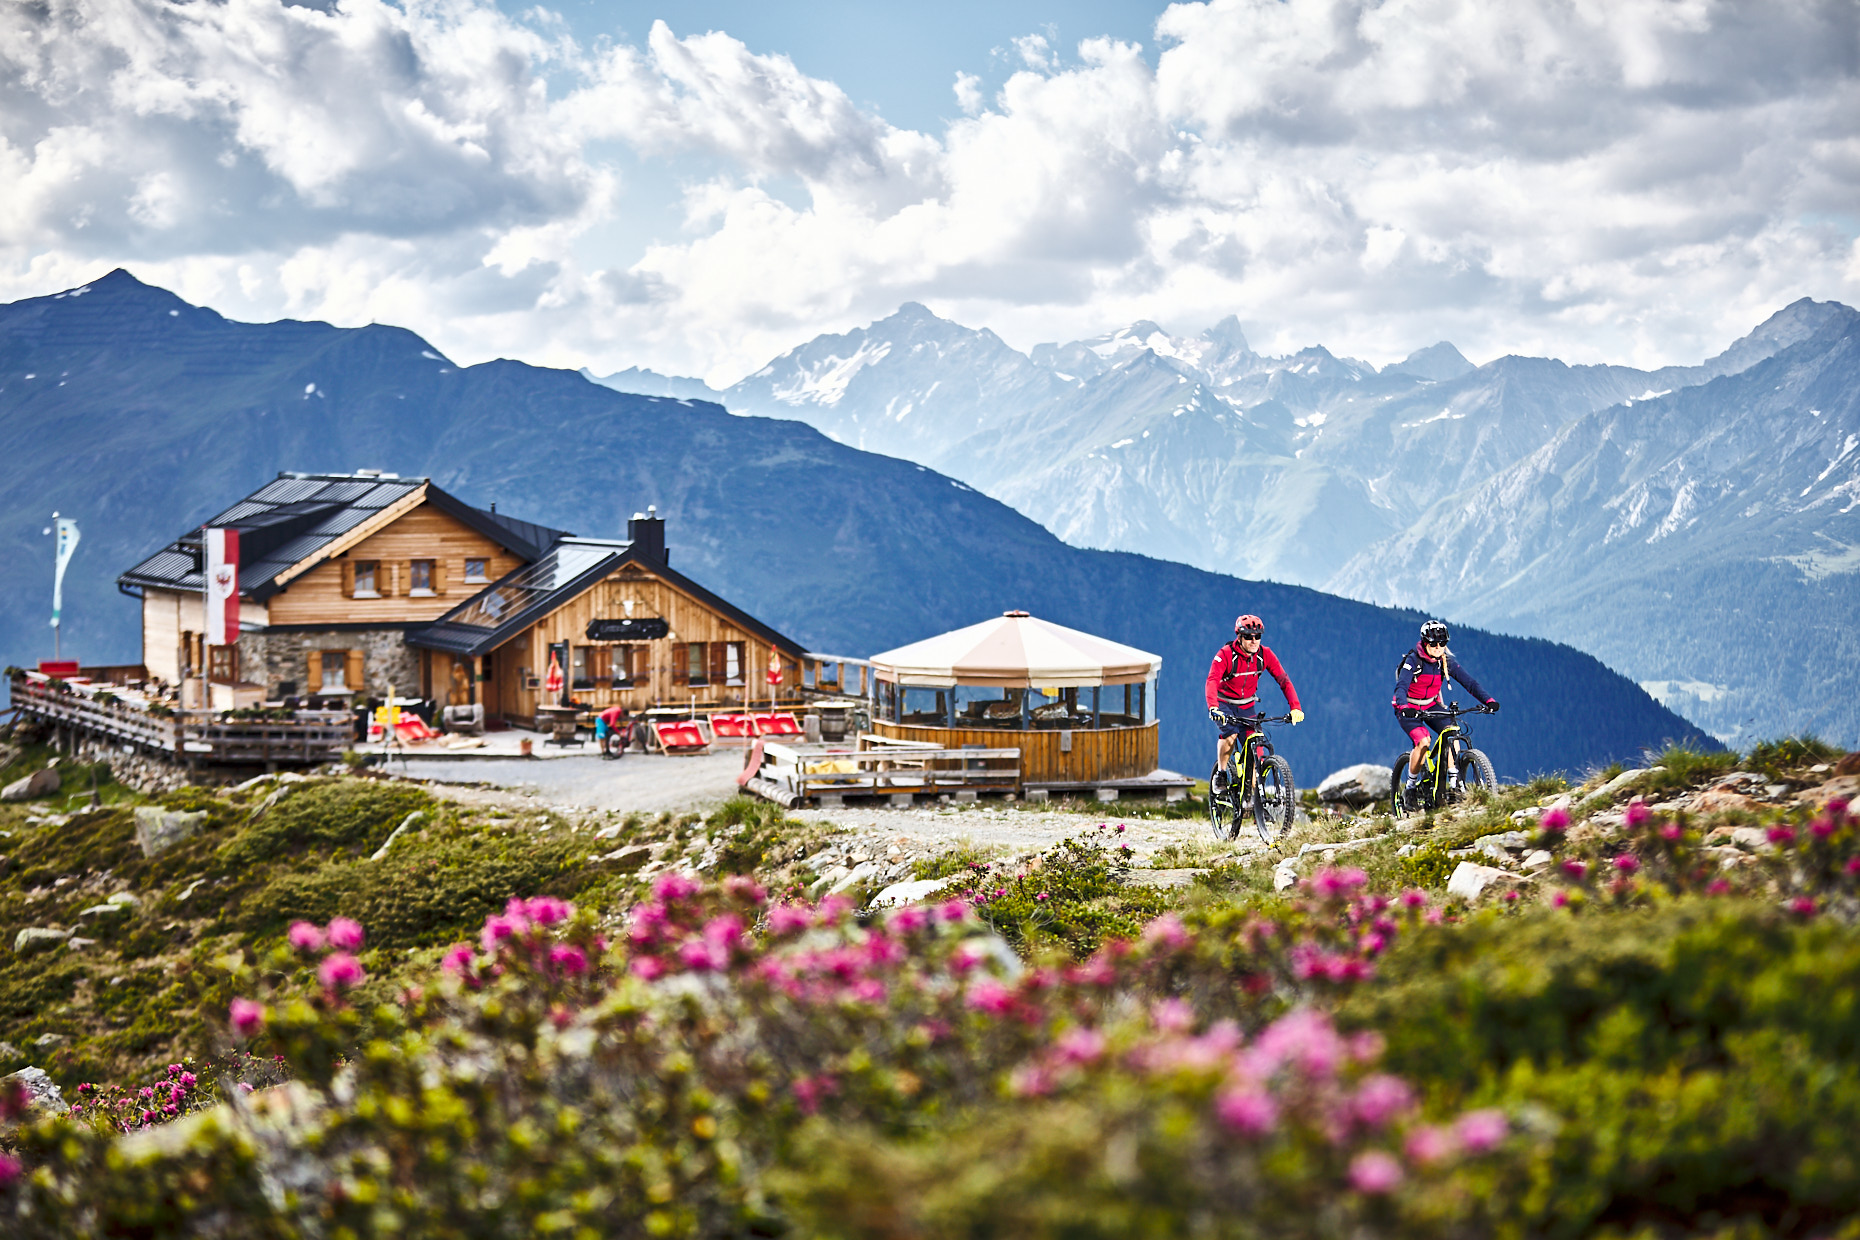 E-Biking to the hut | Stefan Kuerzi Tourism Photography